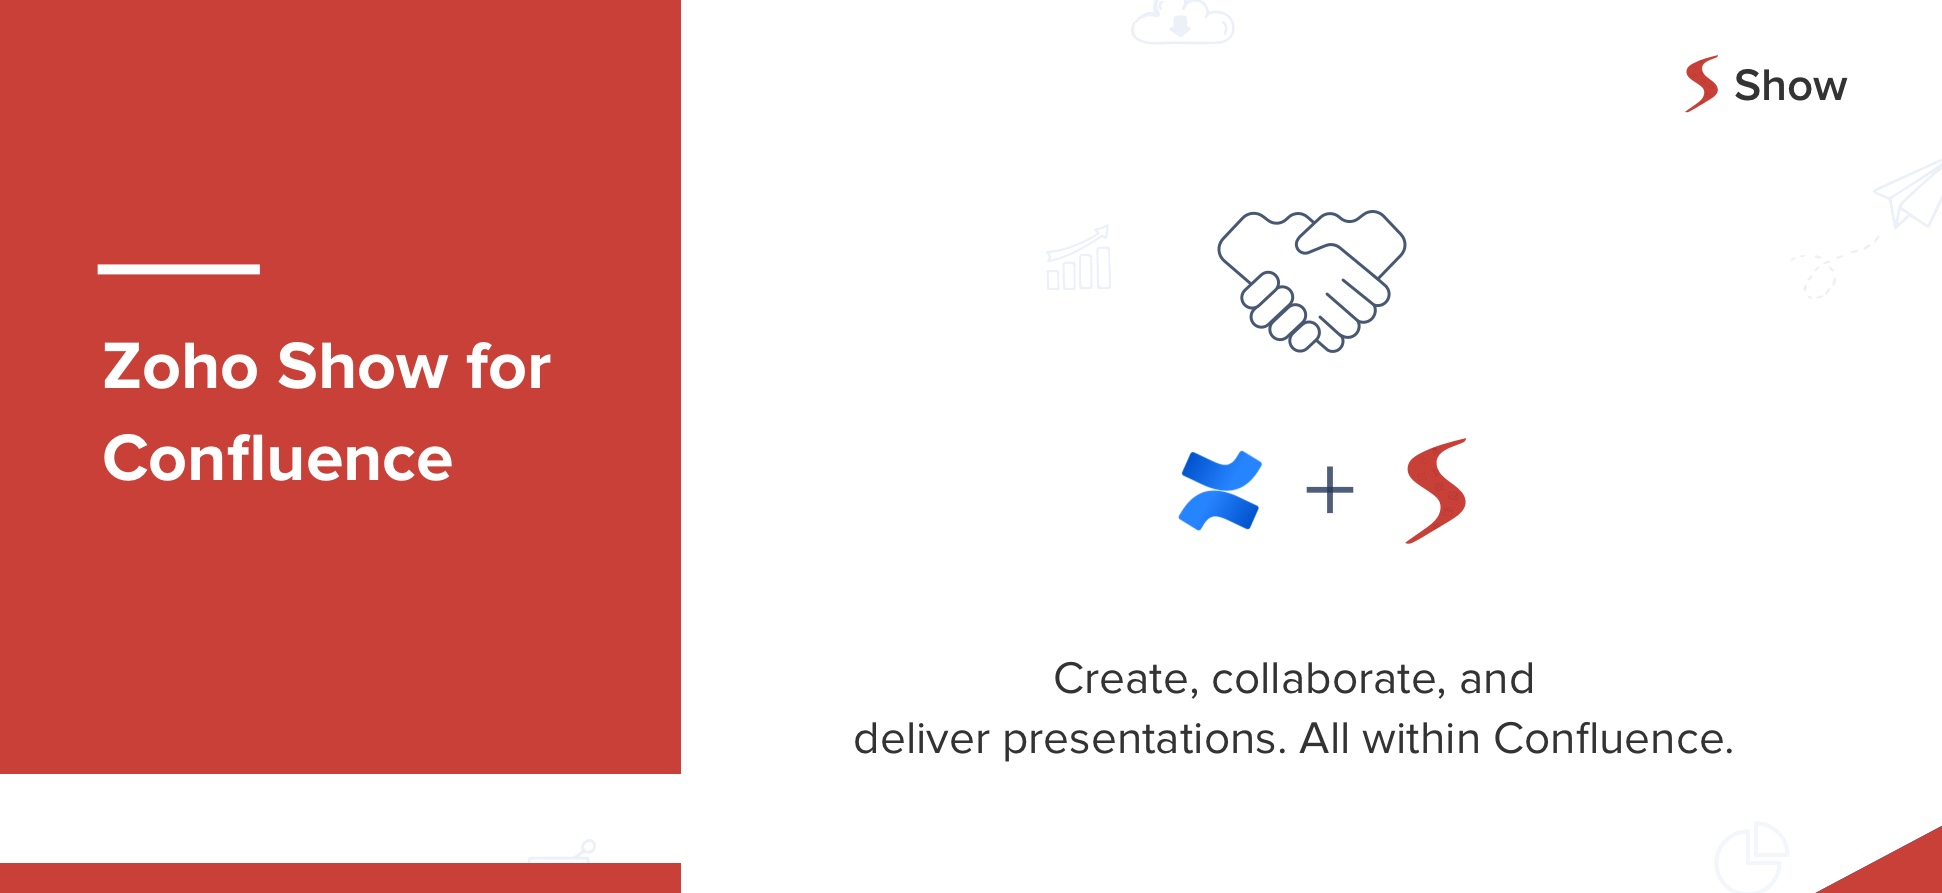 A match made in the cloud – Introducing Zoho Show for Confluence.